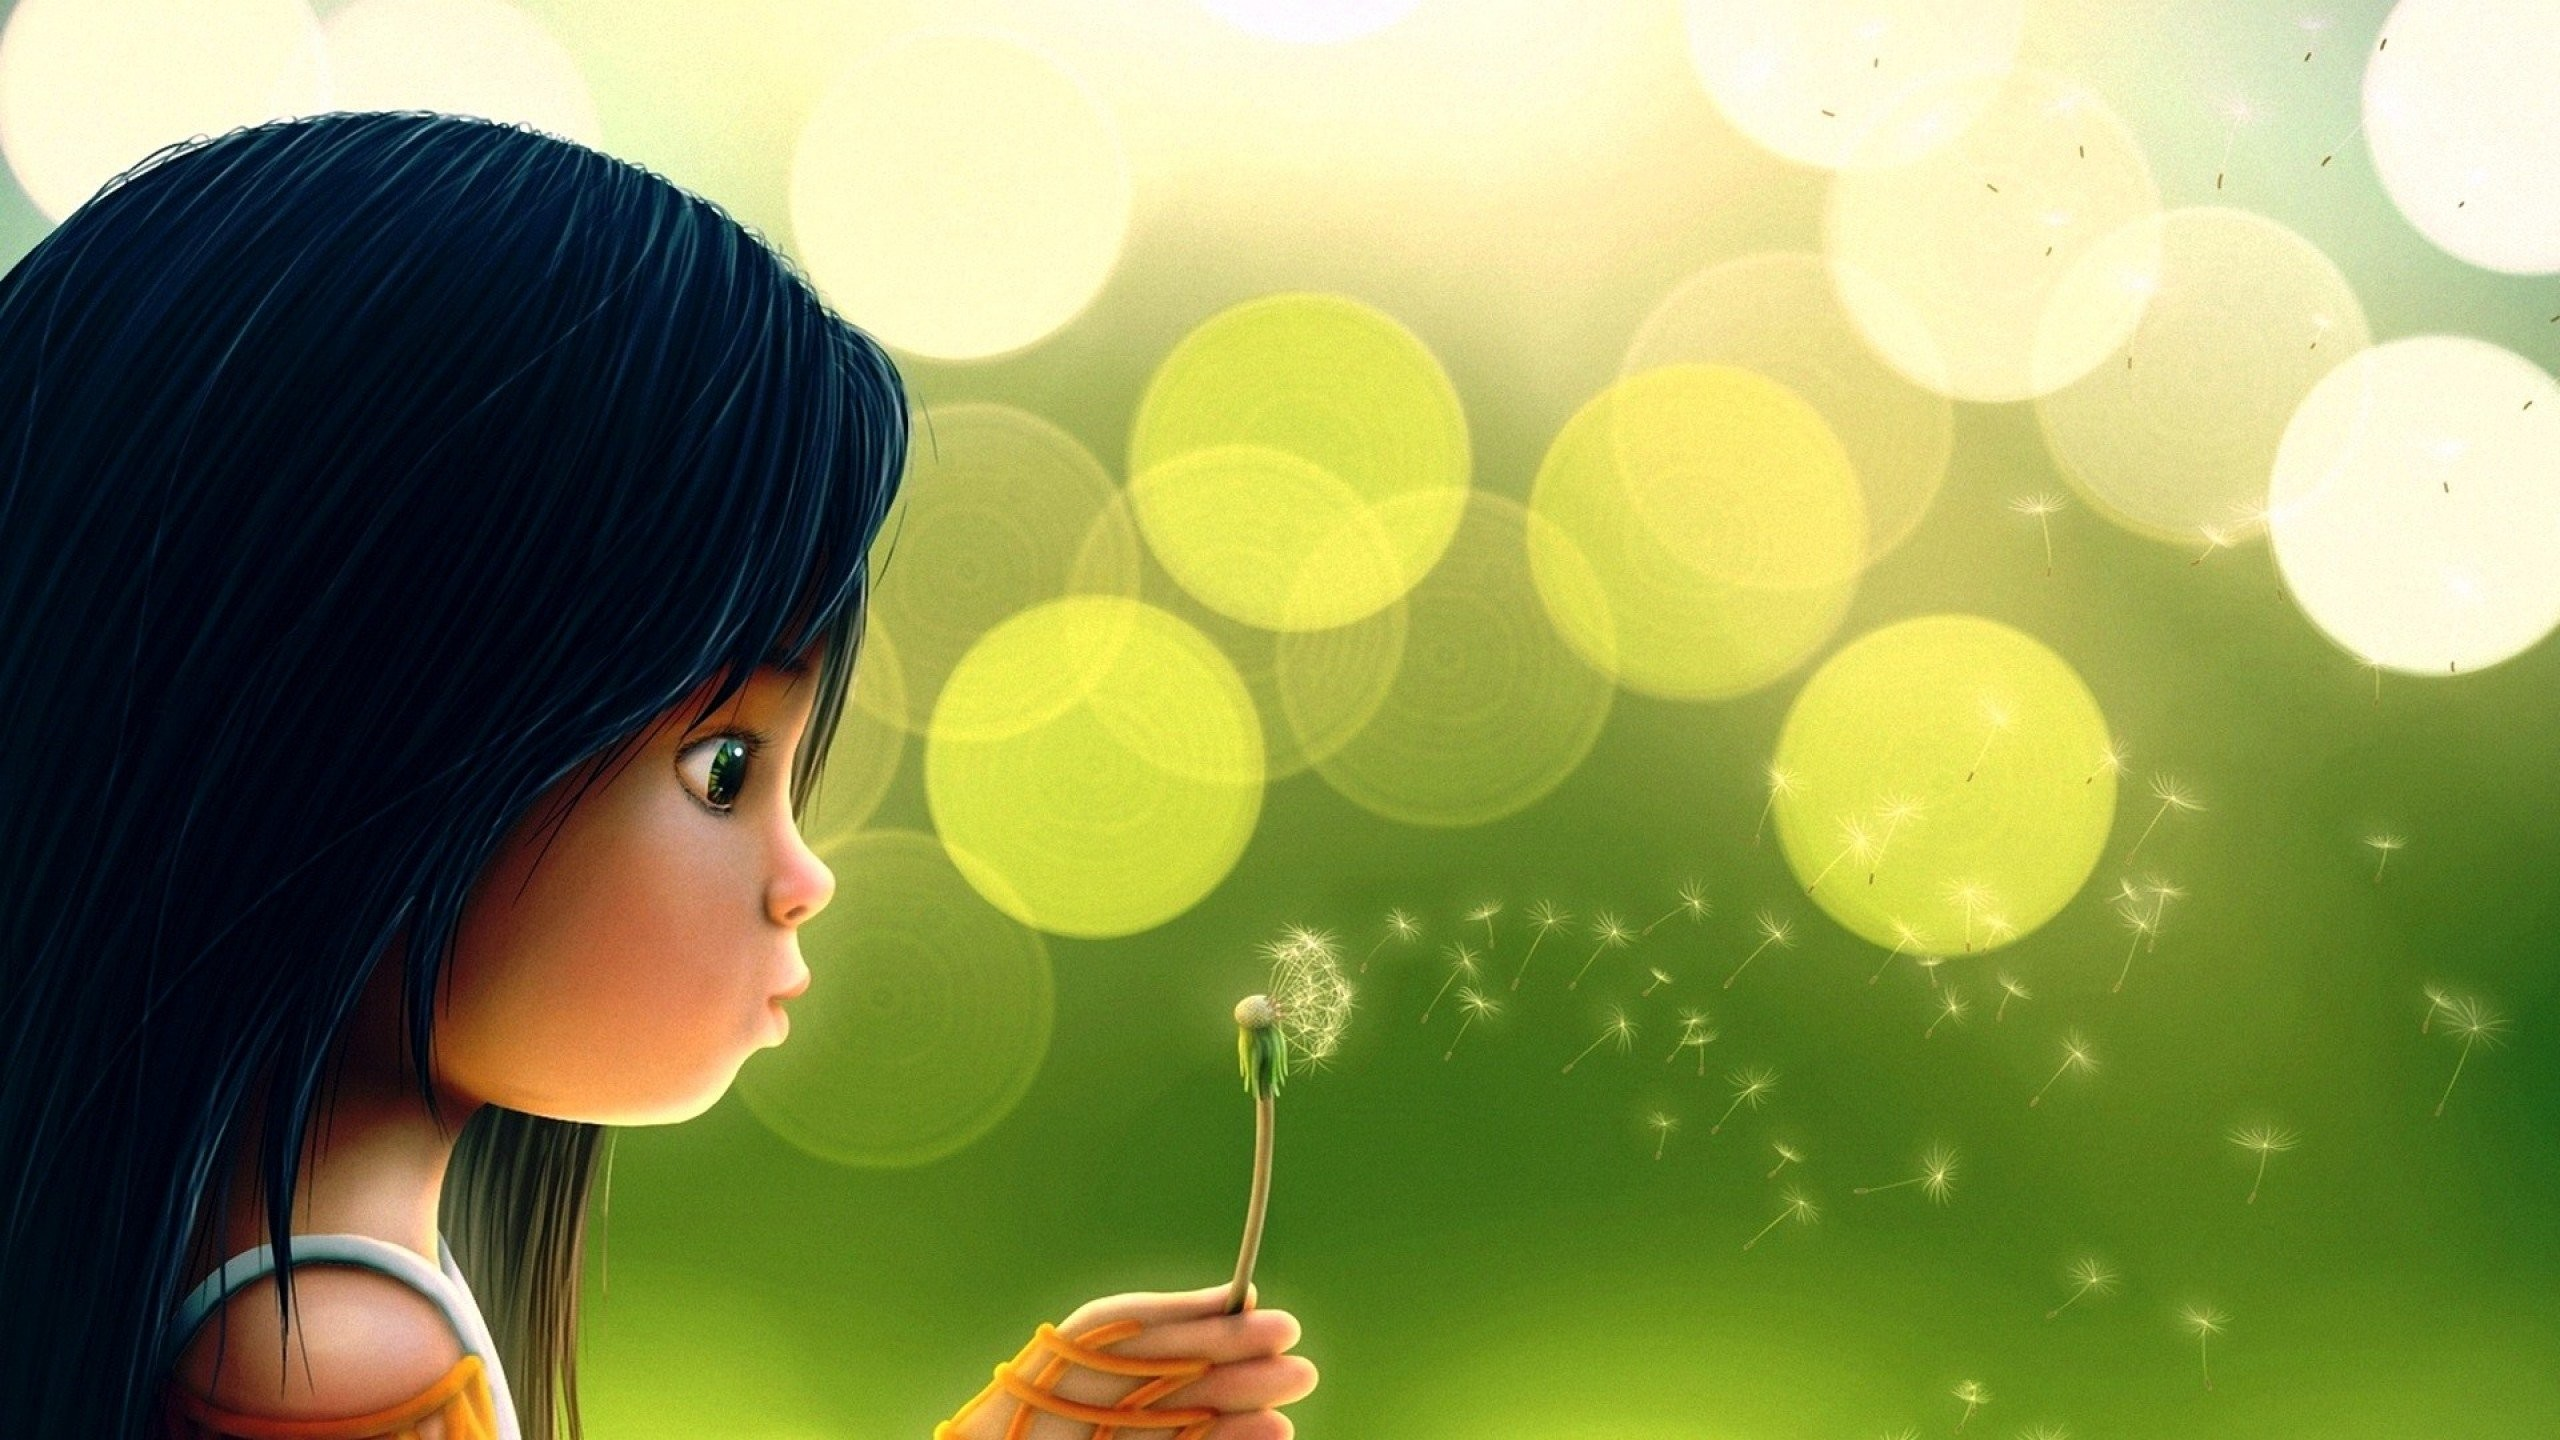 Beautiful Cute Cartoon Wallpapers For Girls 46 Images Castrophotos